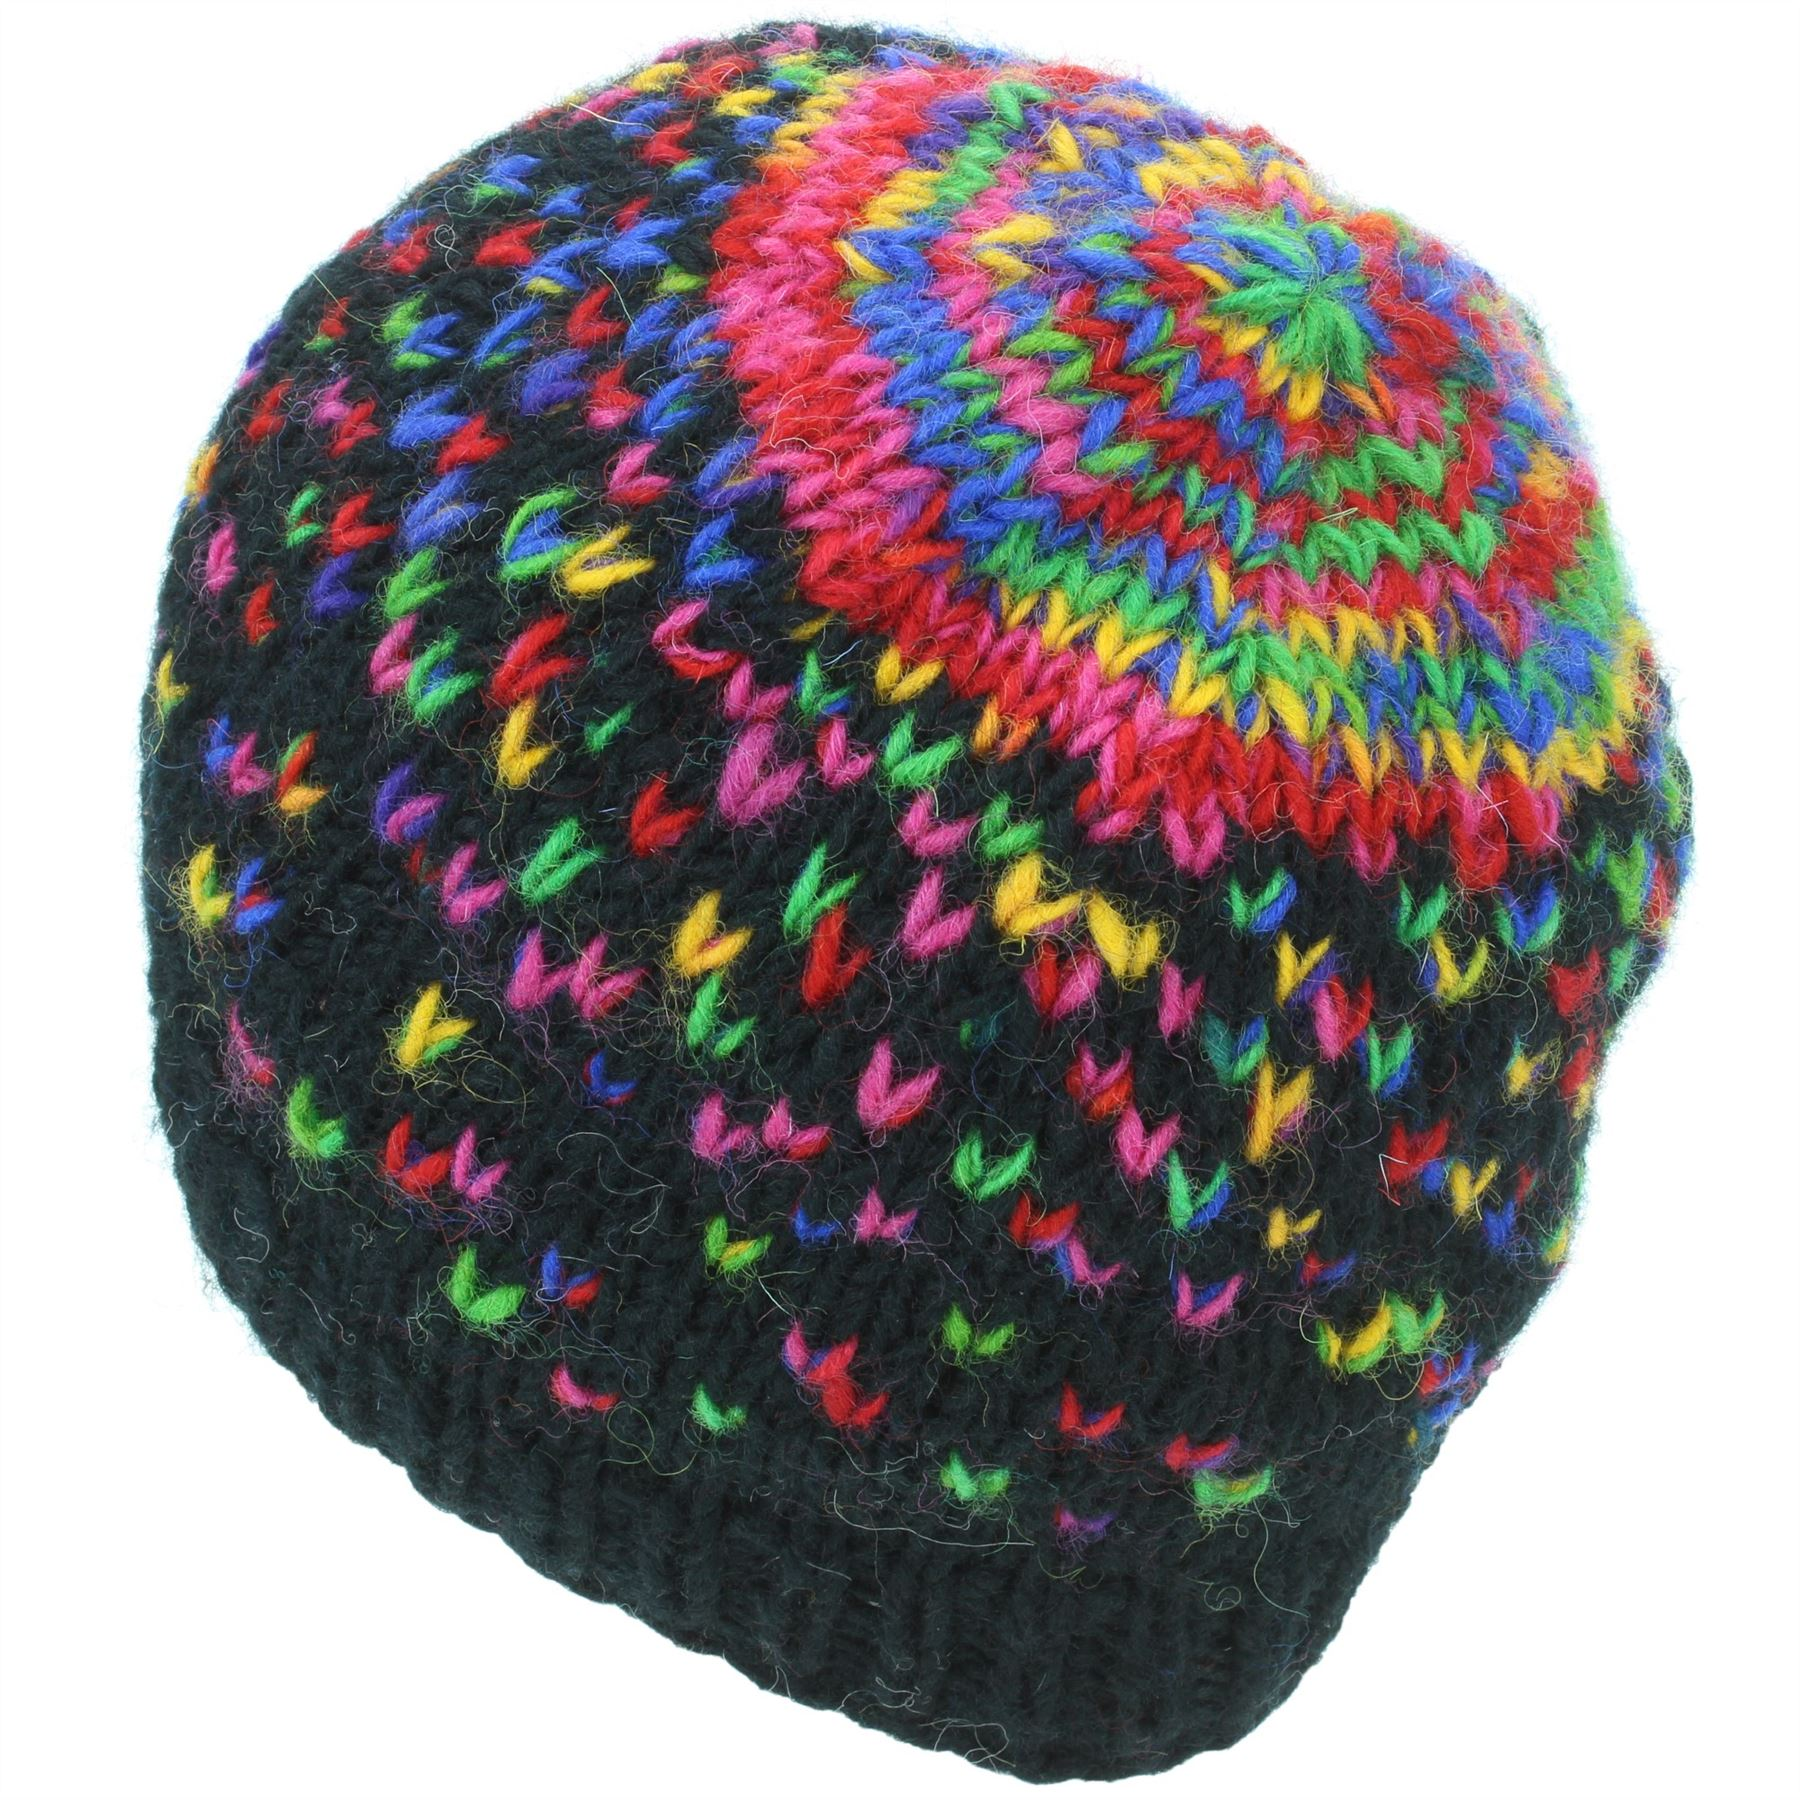 df9f4850e5a Beanie Hat Wool Cap Warm Winter Colourful Soft Lined LoudElephant ...